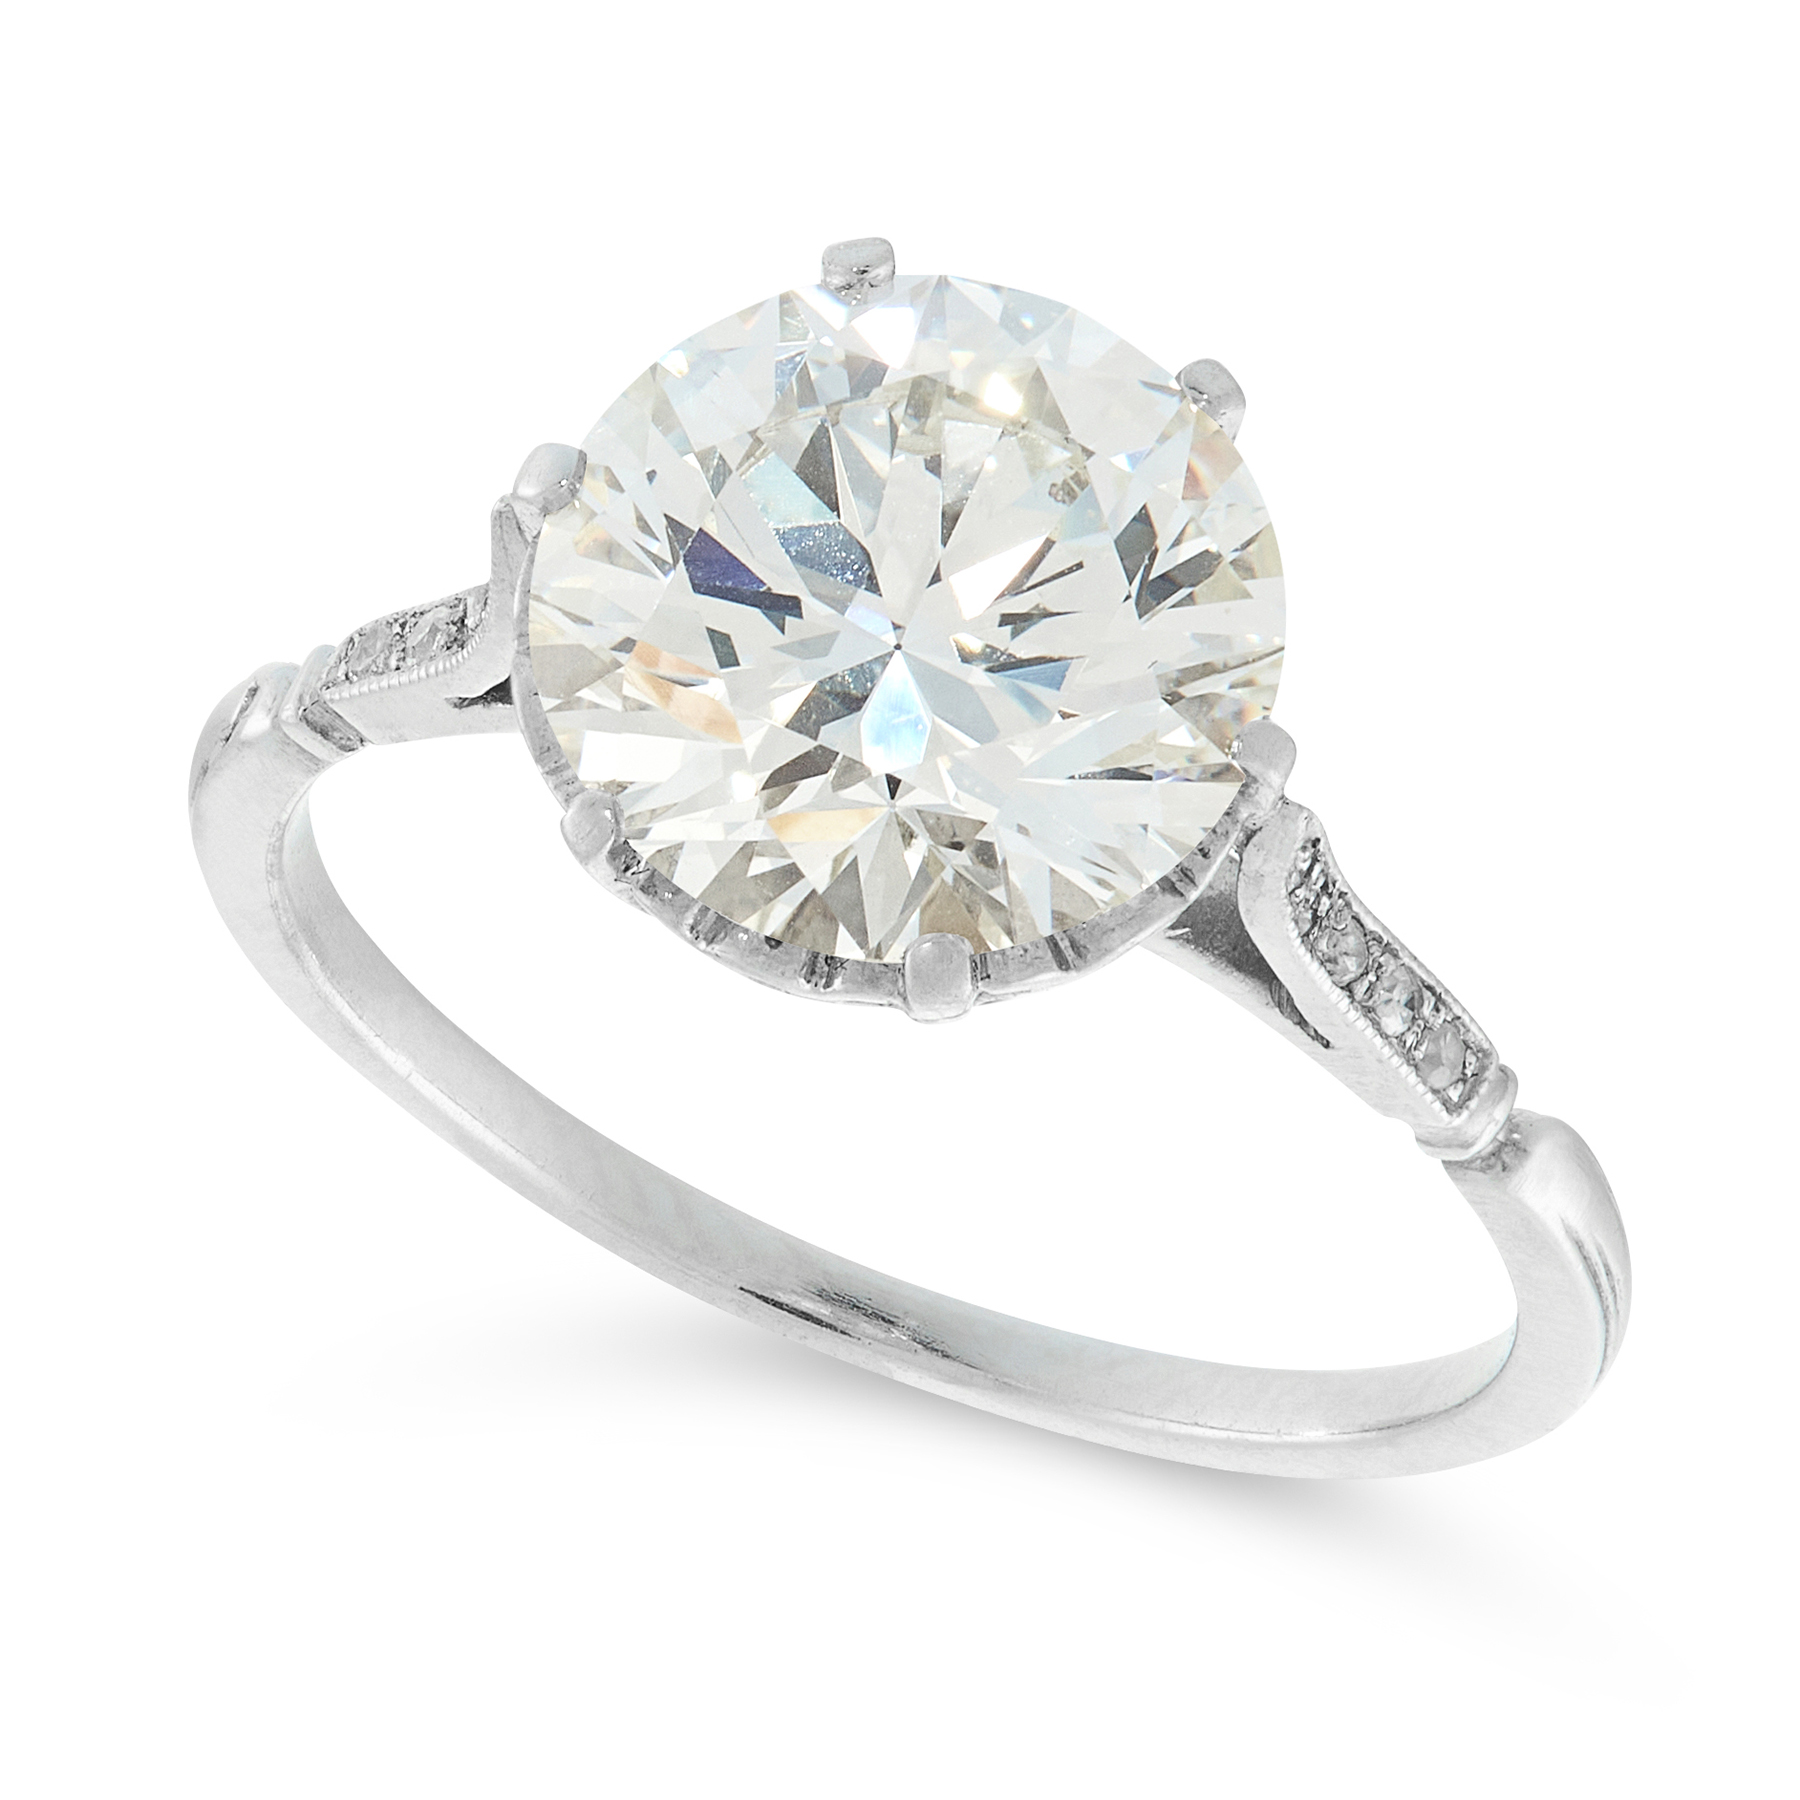 A SOLITAIRE DIAMOND RING set with a transitional cut diamond of 2.78 carats, between tapering - Image 2 of 2